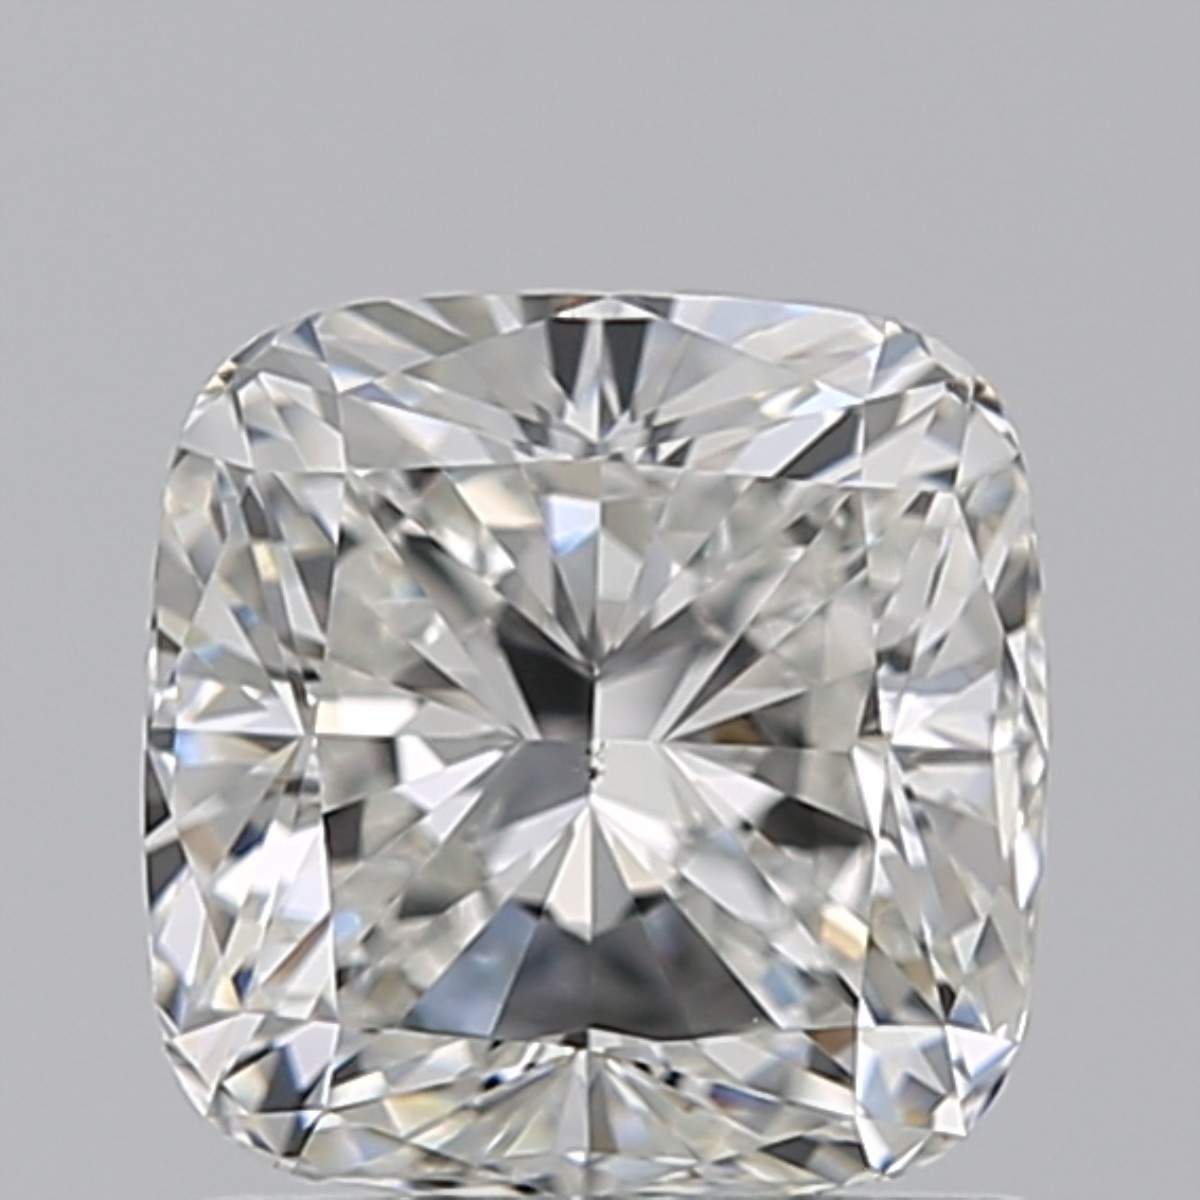 1.01 Carat Cushion Brilliant Diamond (G/VS2)